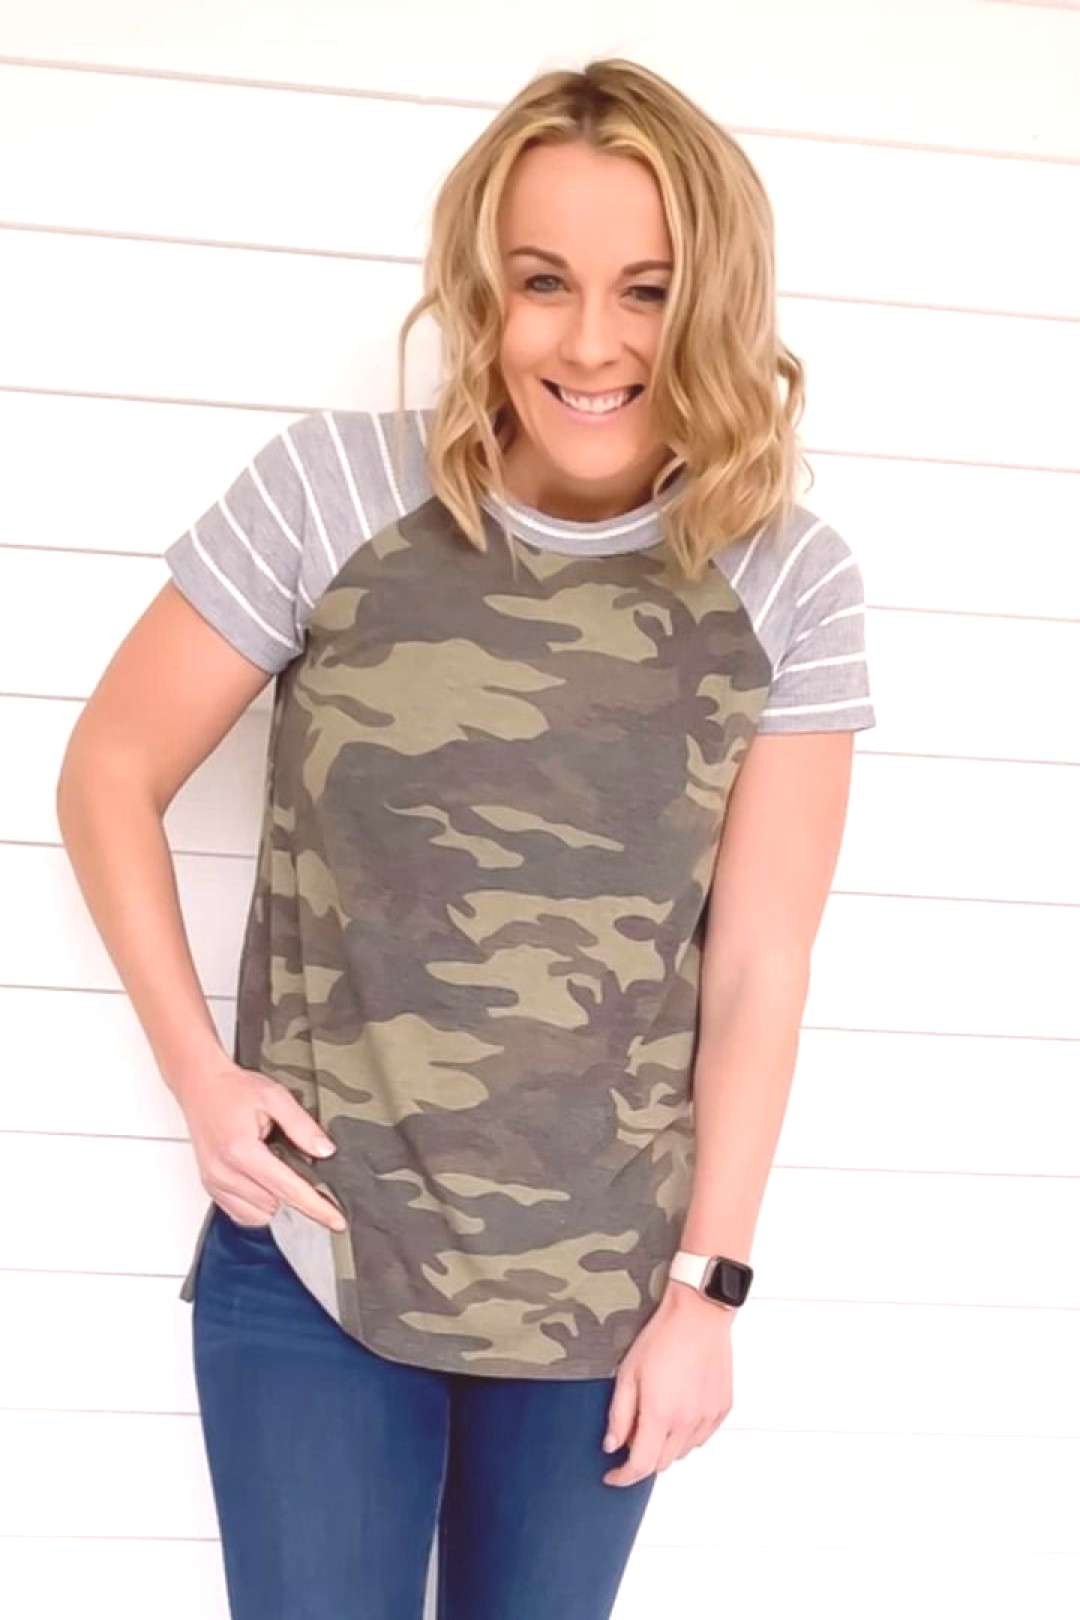 fashion This new arrival is perfect for long days at home ... which seem to be a regular occurrence